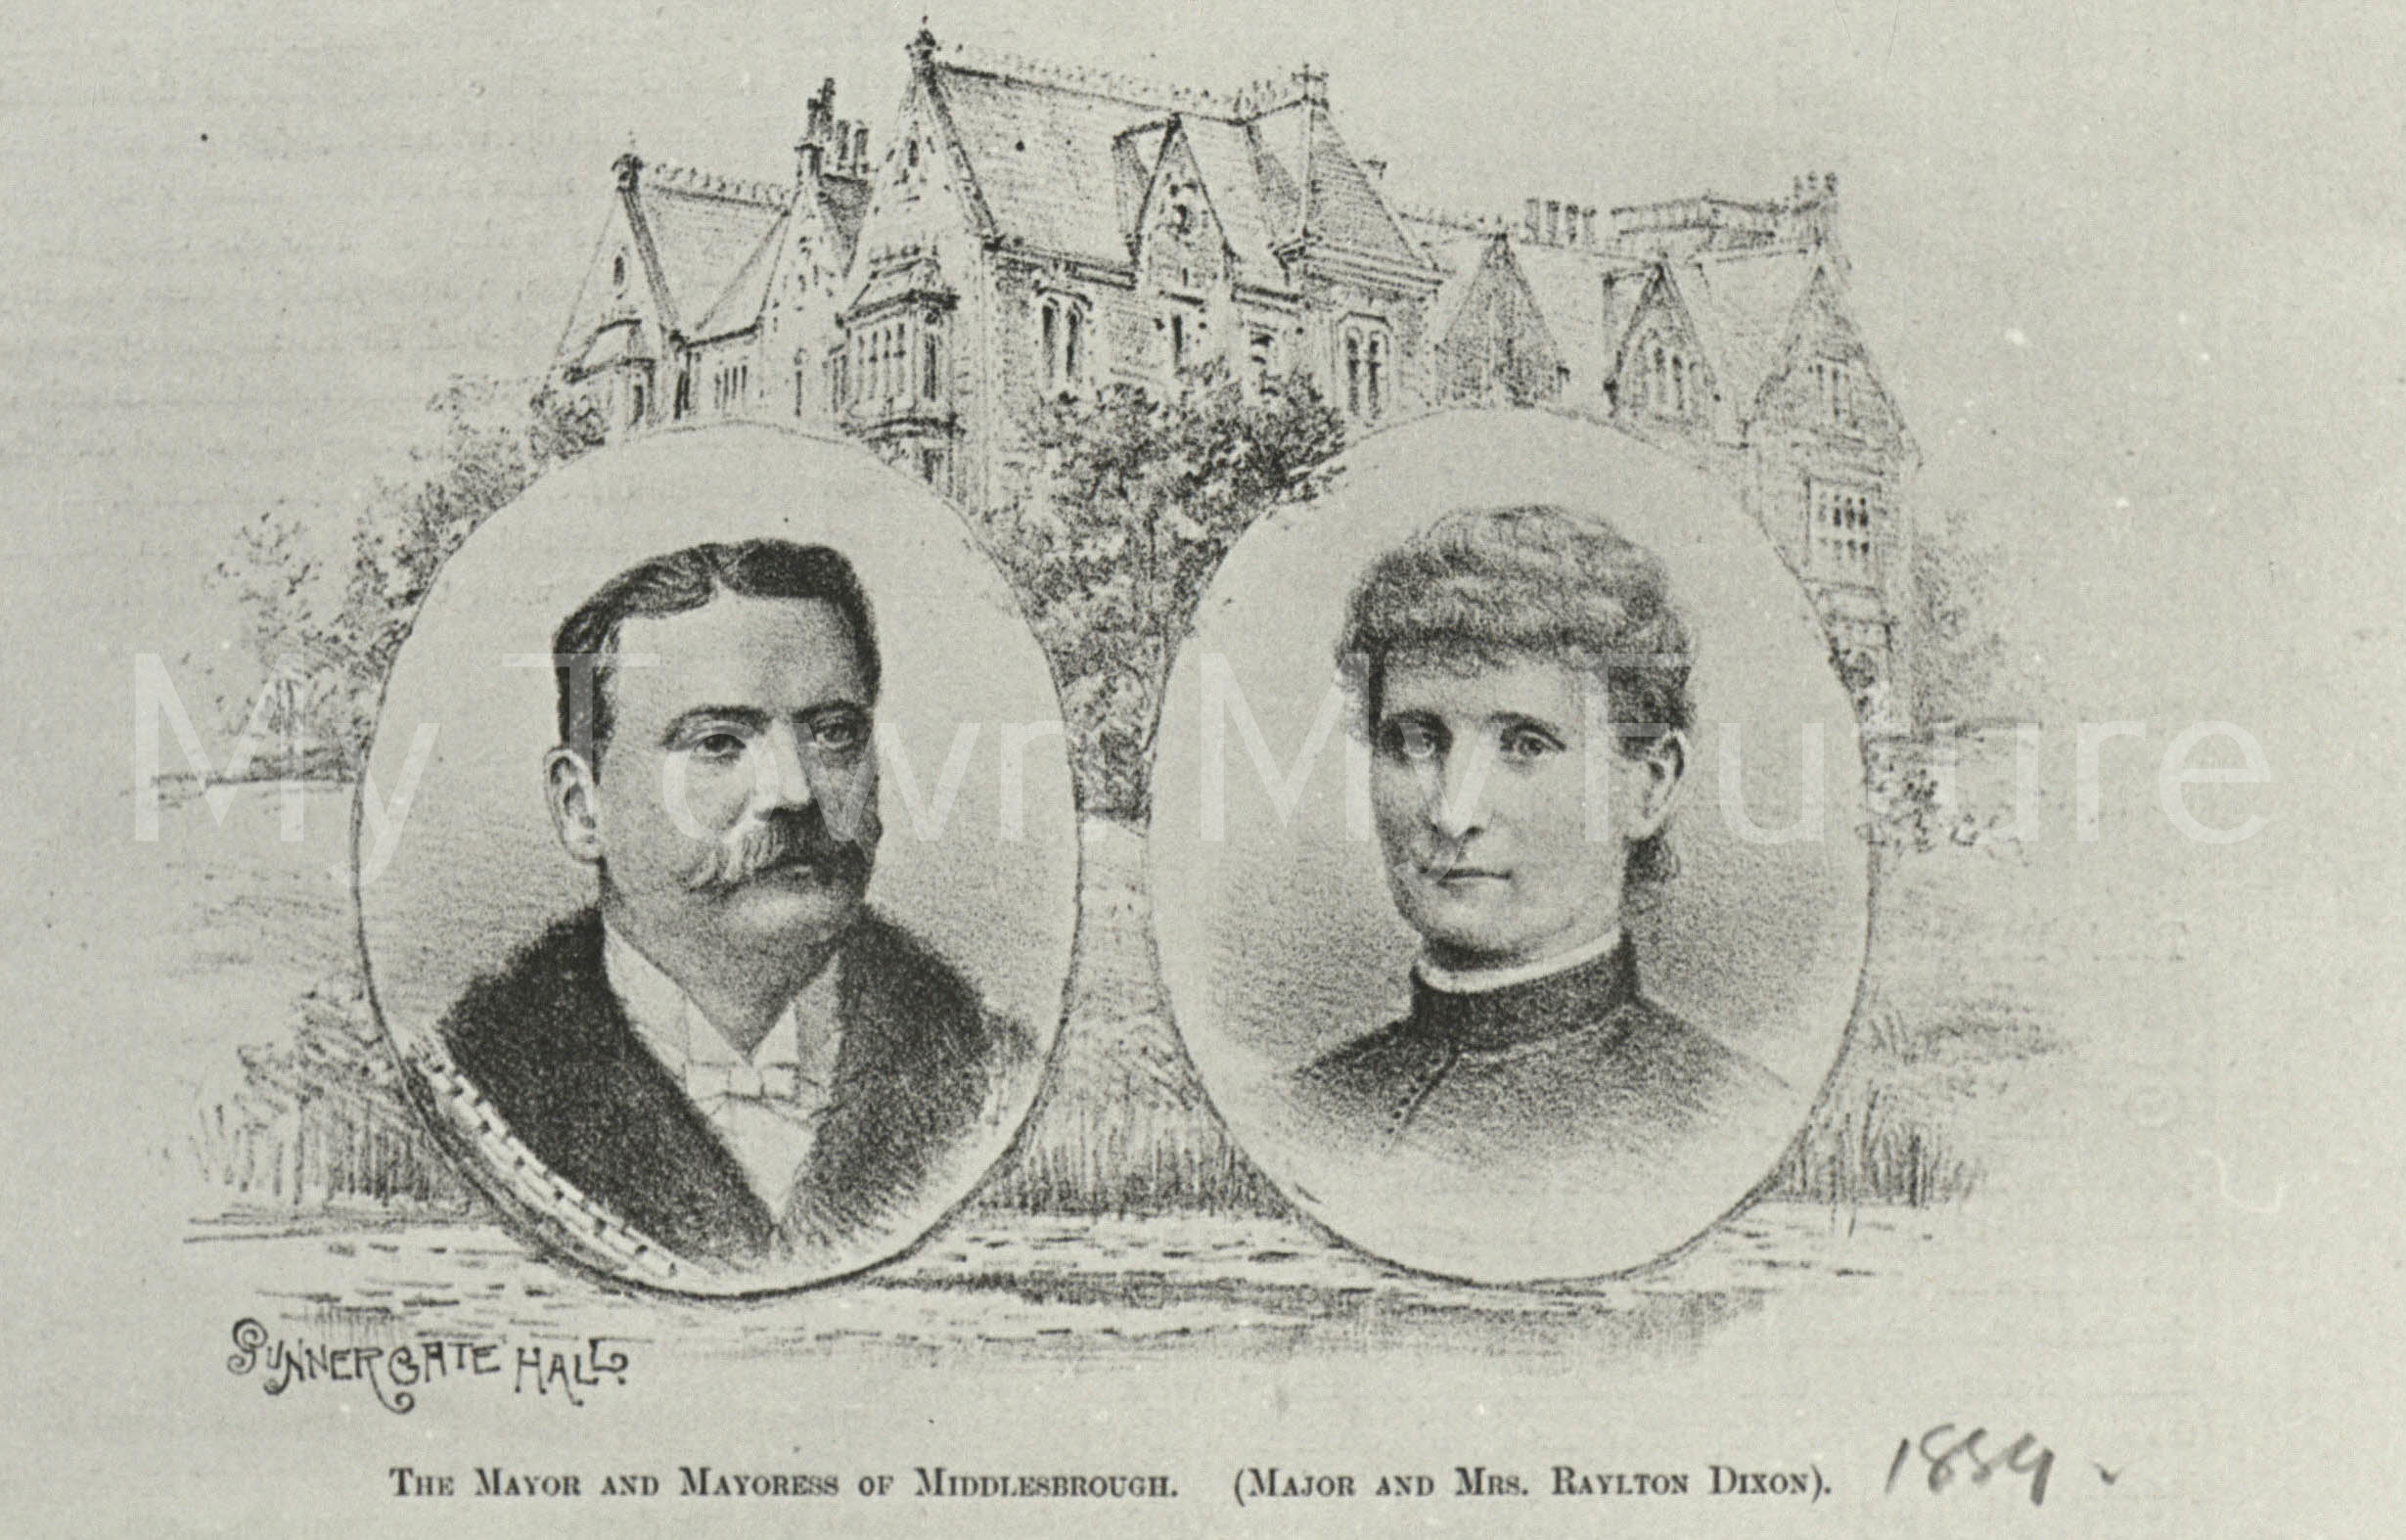 Sir Raylton Dixon and Mrs Dixon (1889)